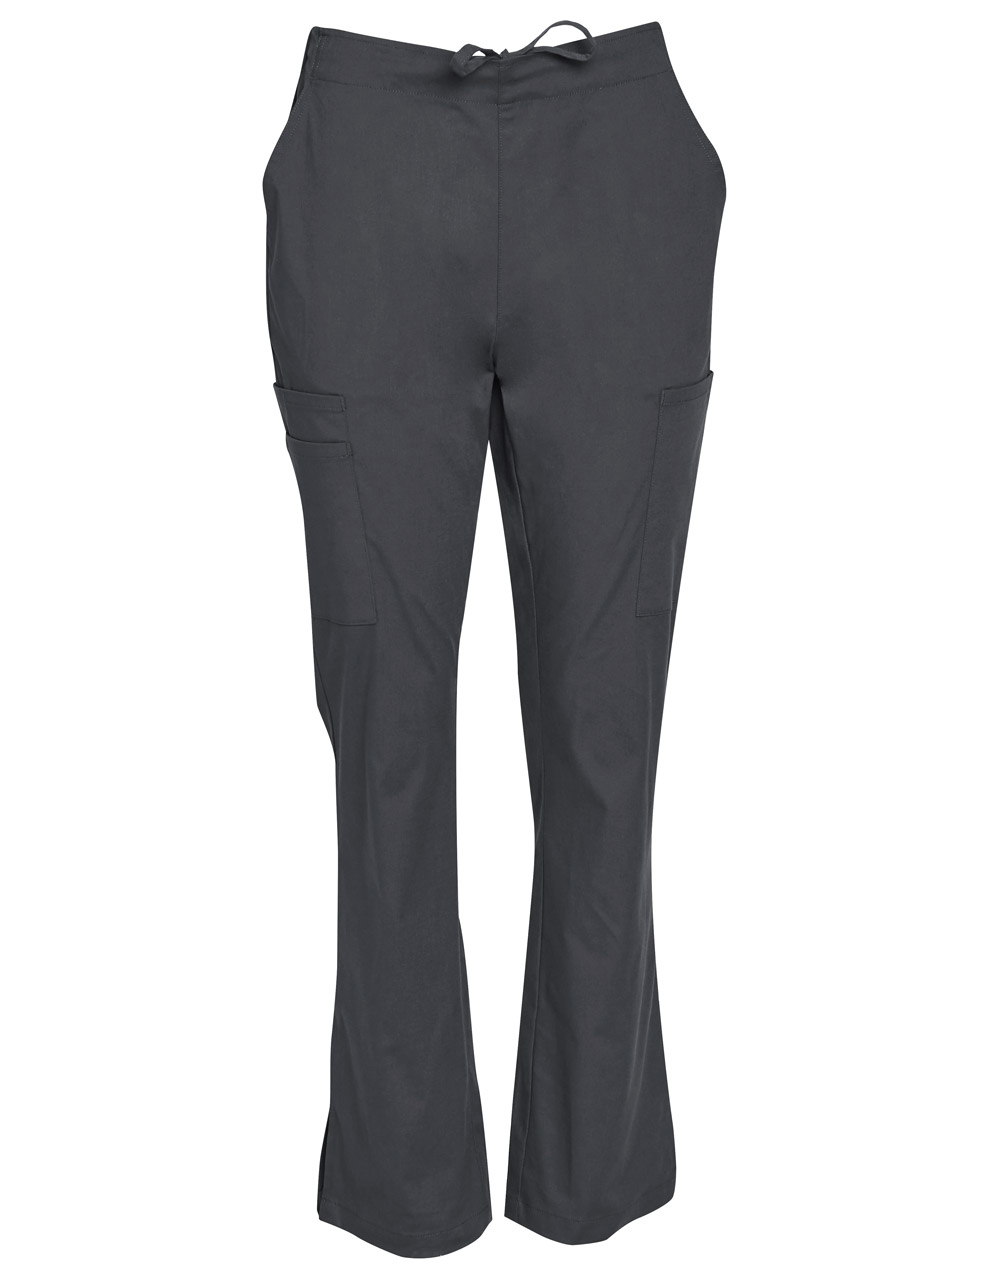 Order Online Charcoal Ladies Semi-Elastic Waist Tie Solid Colour Scrub Pants in Perth